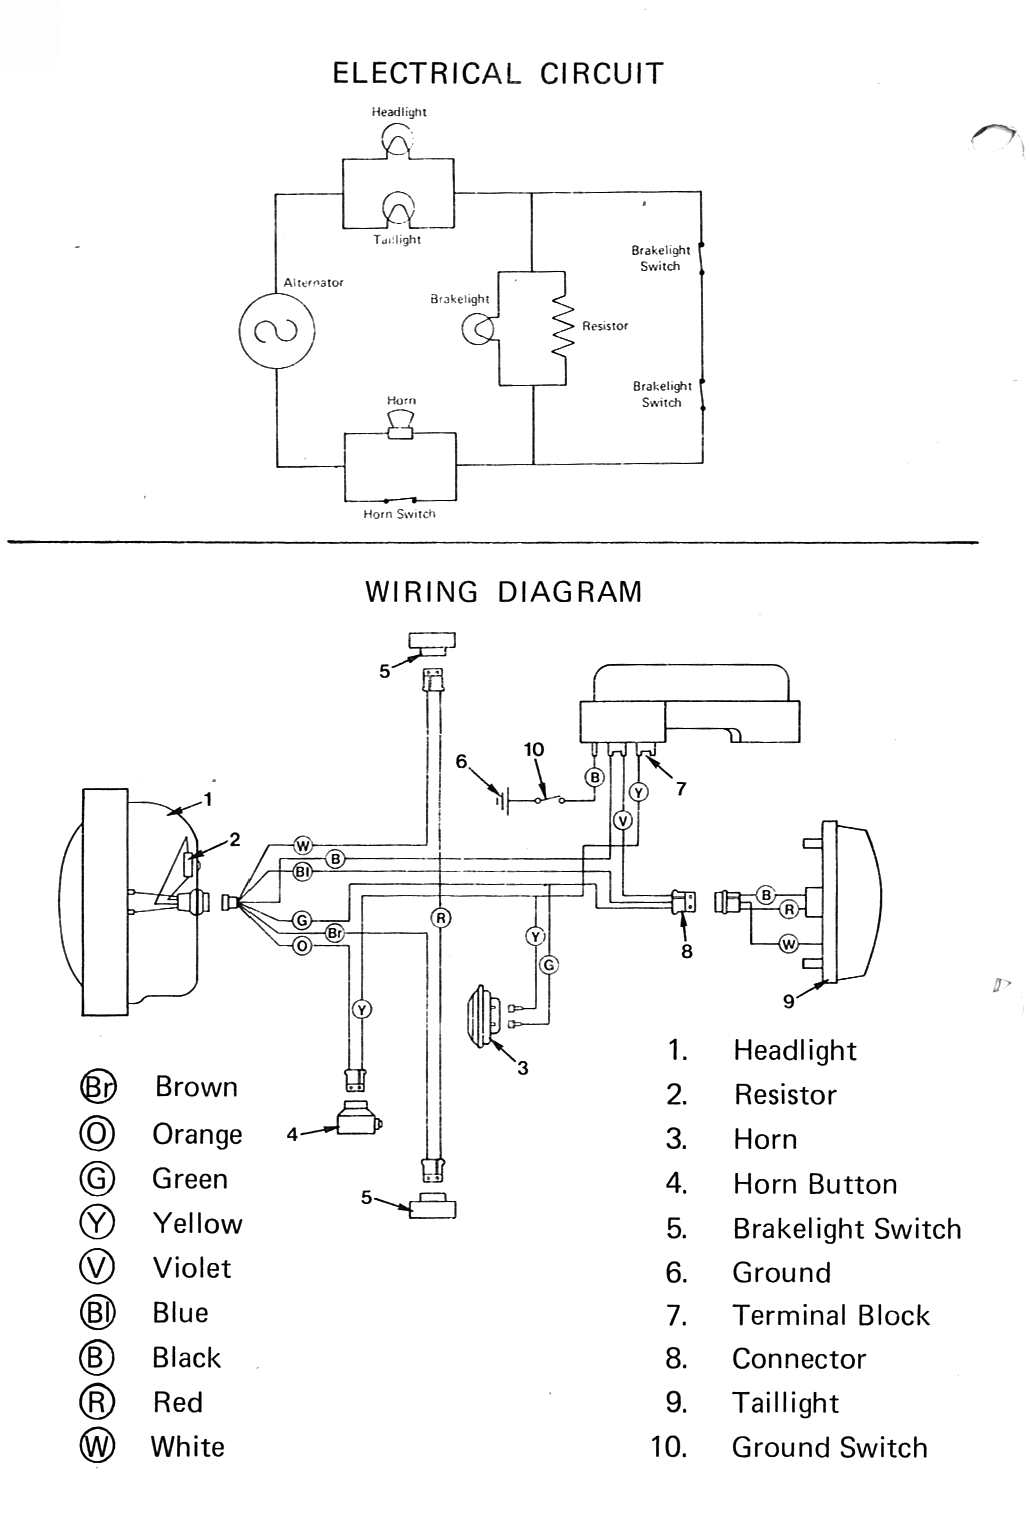 hight resolution of 1984 honda moped wiring diagram wiring diagram centre 1984 honda ct110 wiring diagram 1984 honda moped